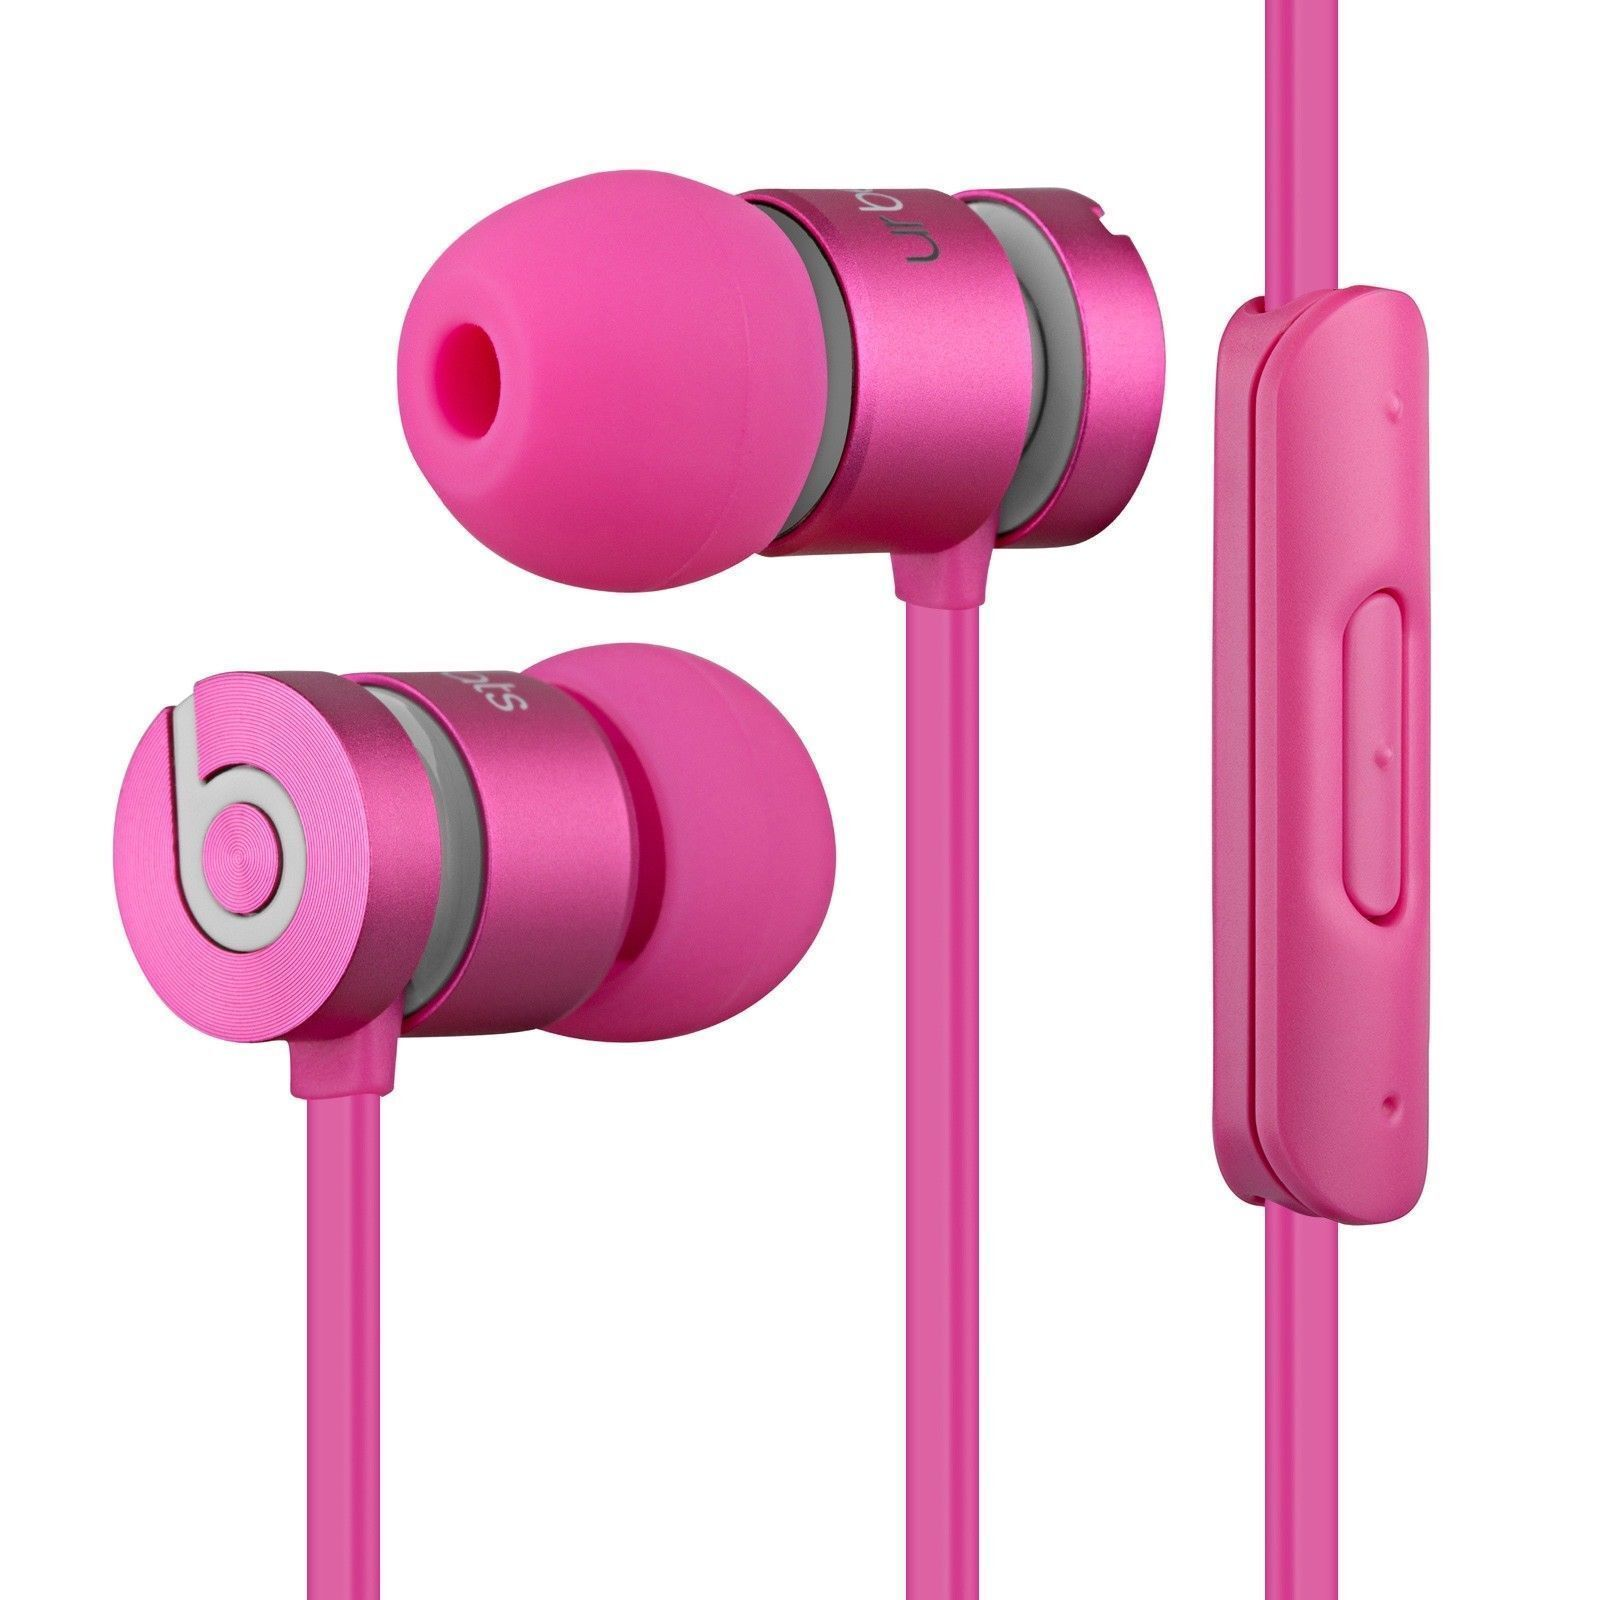 Apple Beats by Dr. Dre urBeats - In-Ear Wired Headphones - All Colors